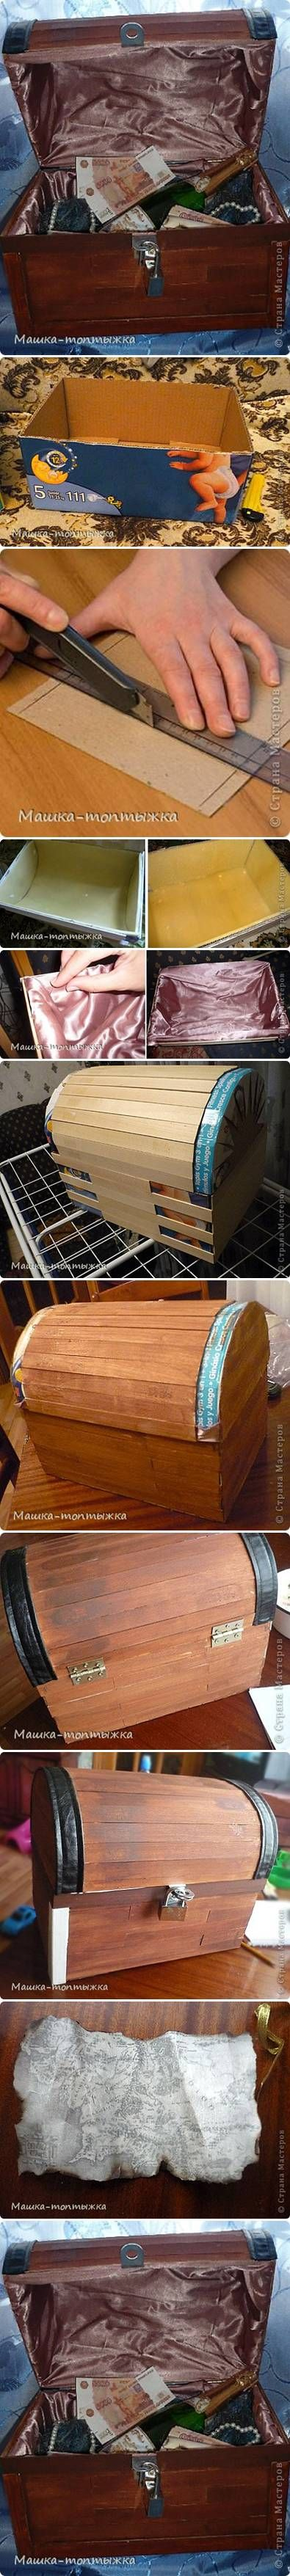 DIY Cardboard Treasure Box